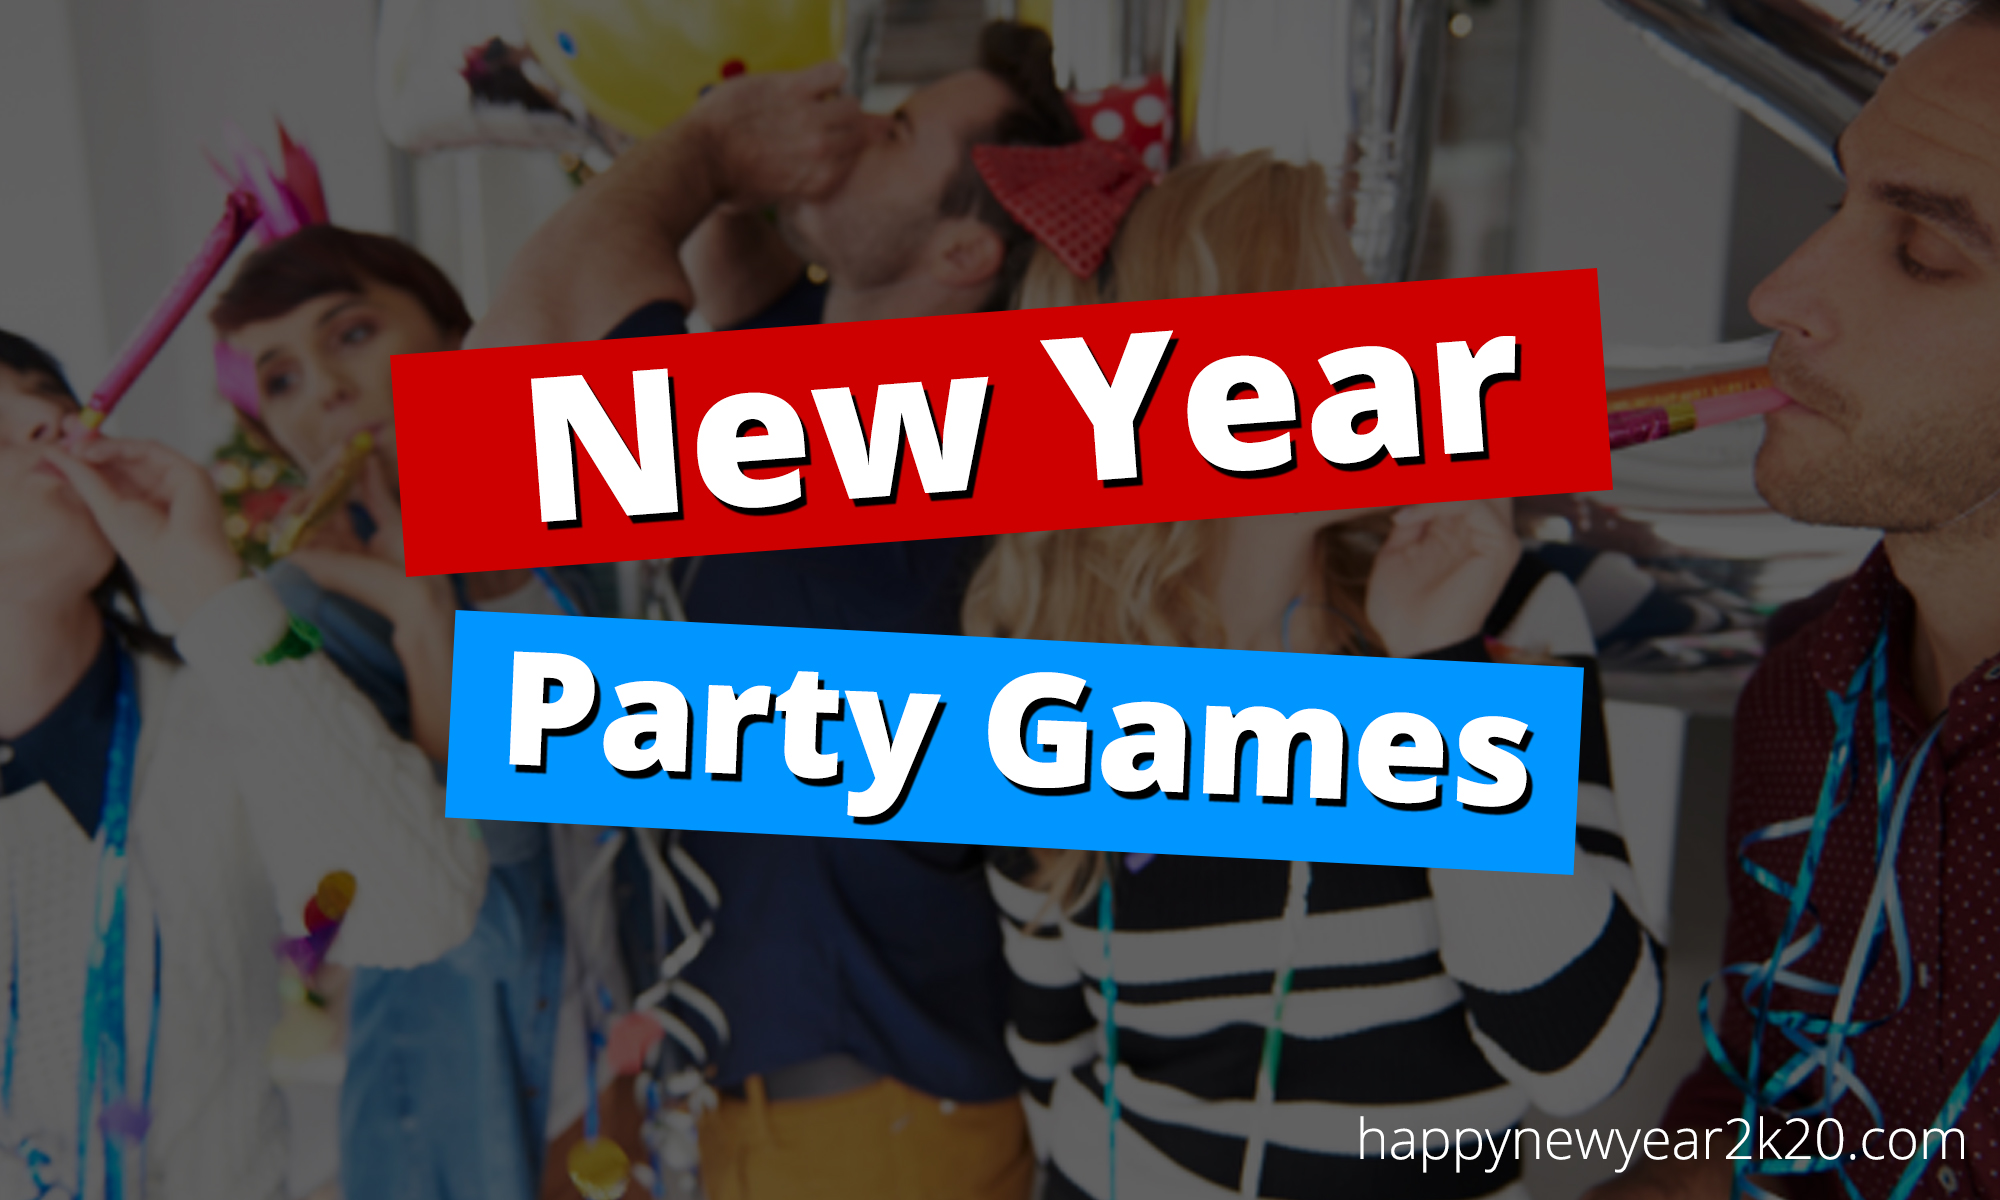 New-Year-Party-Games-2020